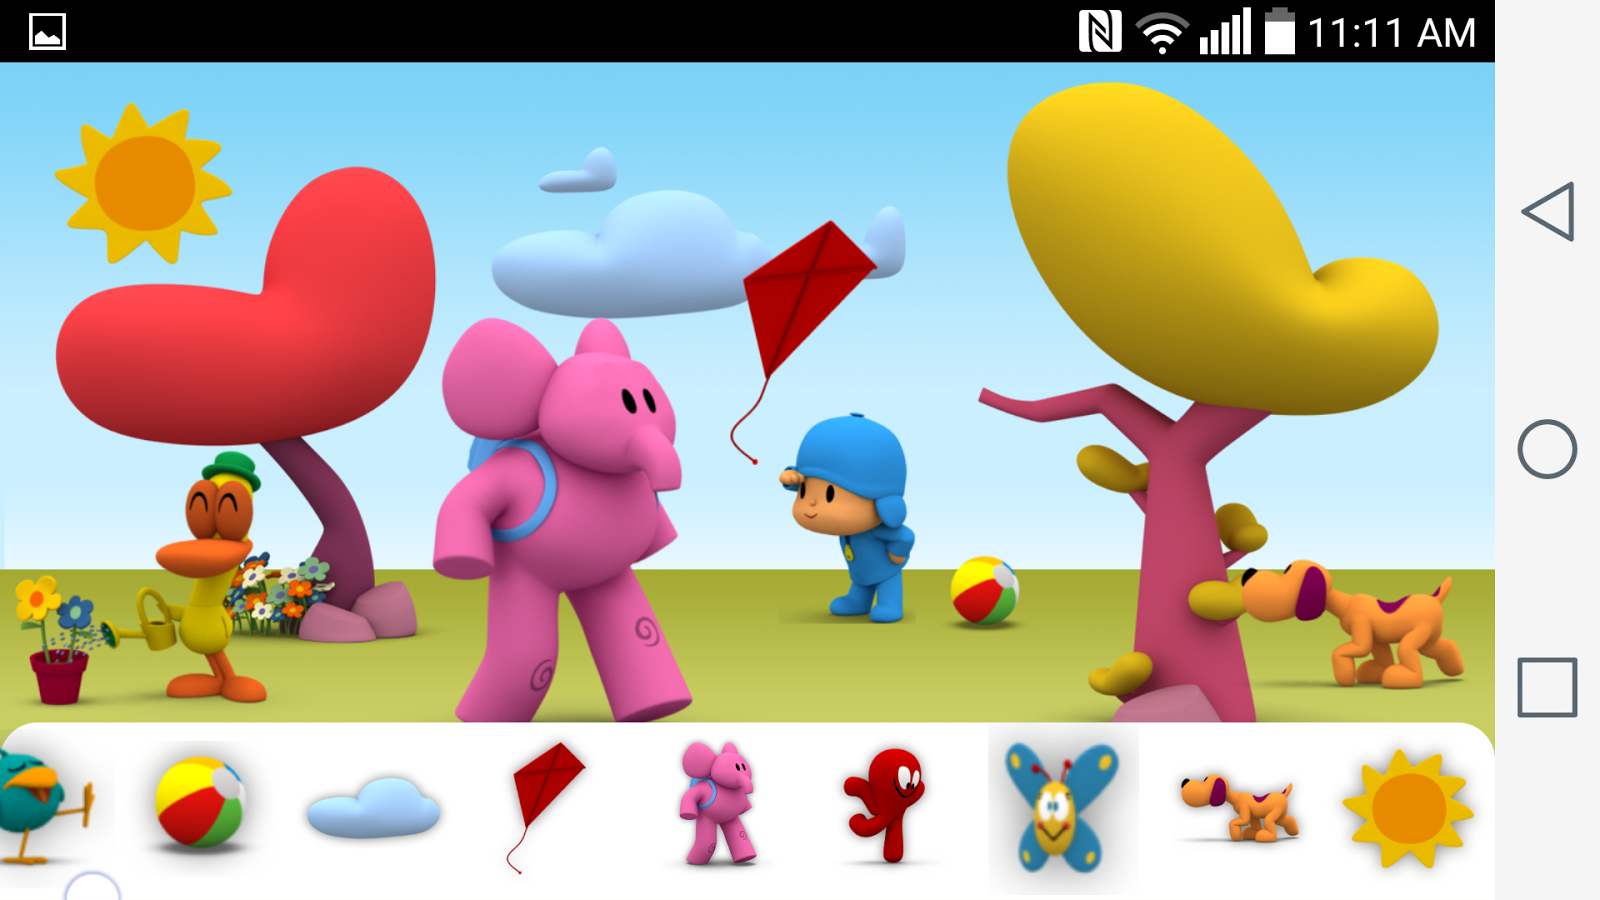 pocoyo wallpaper hd